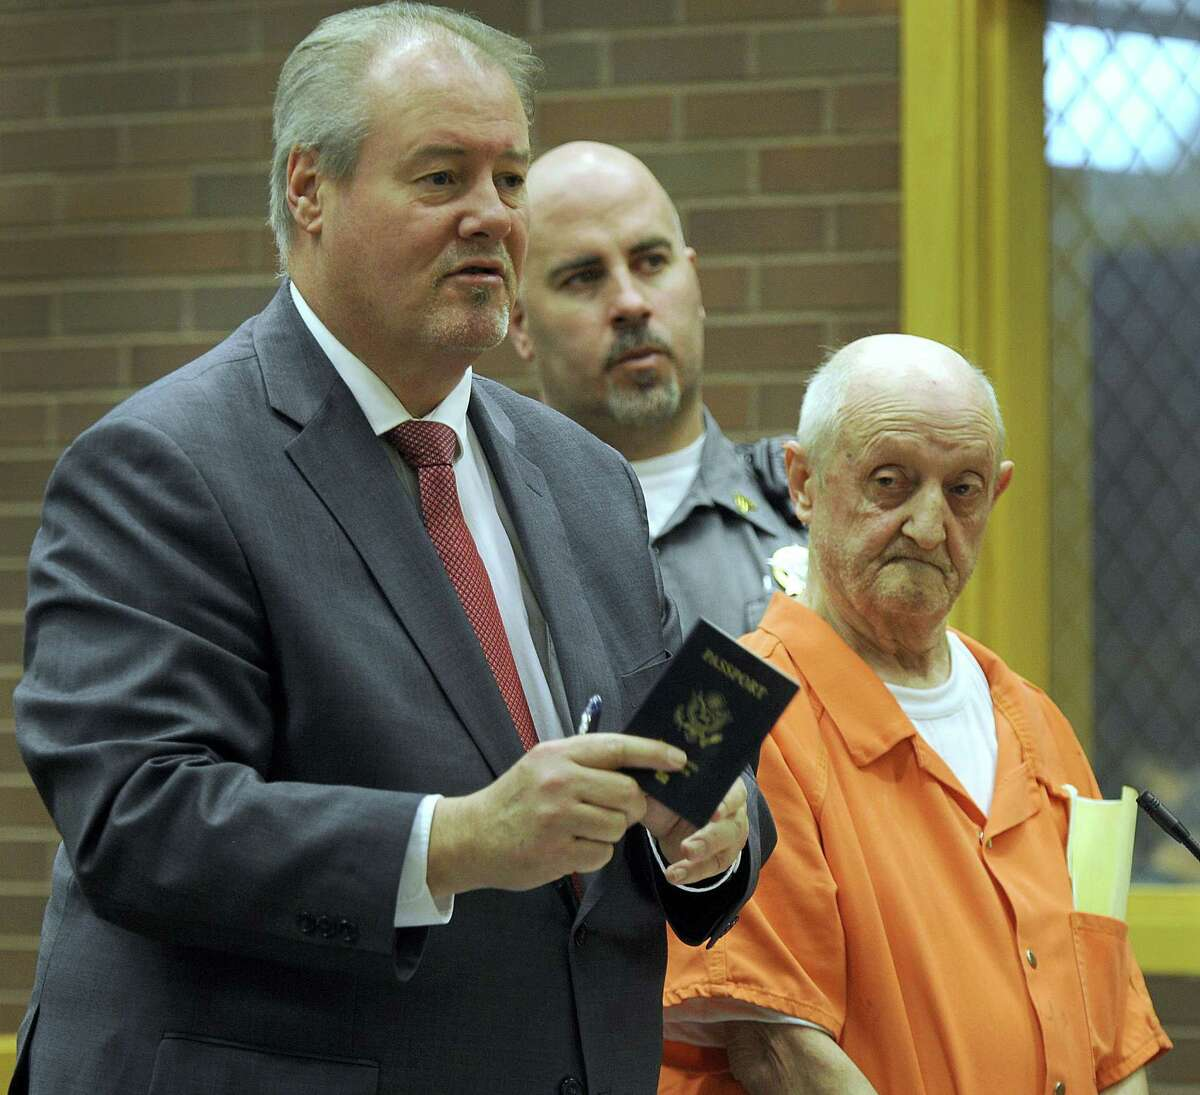 Attorney Edward Gavin shows William Tefzger's passport at a bond hearing at state Superior Court in Danbury on Tuesday.